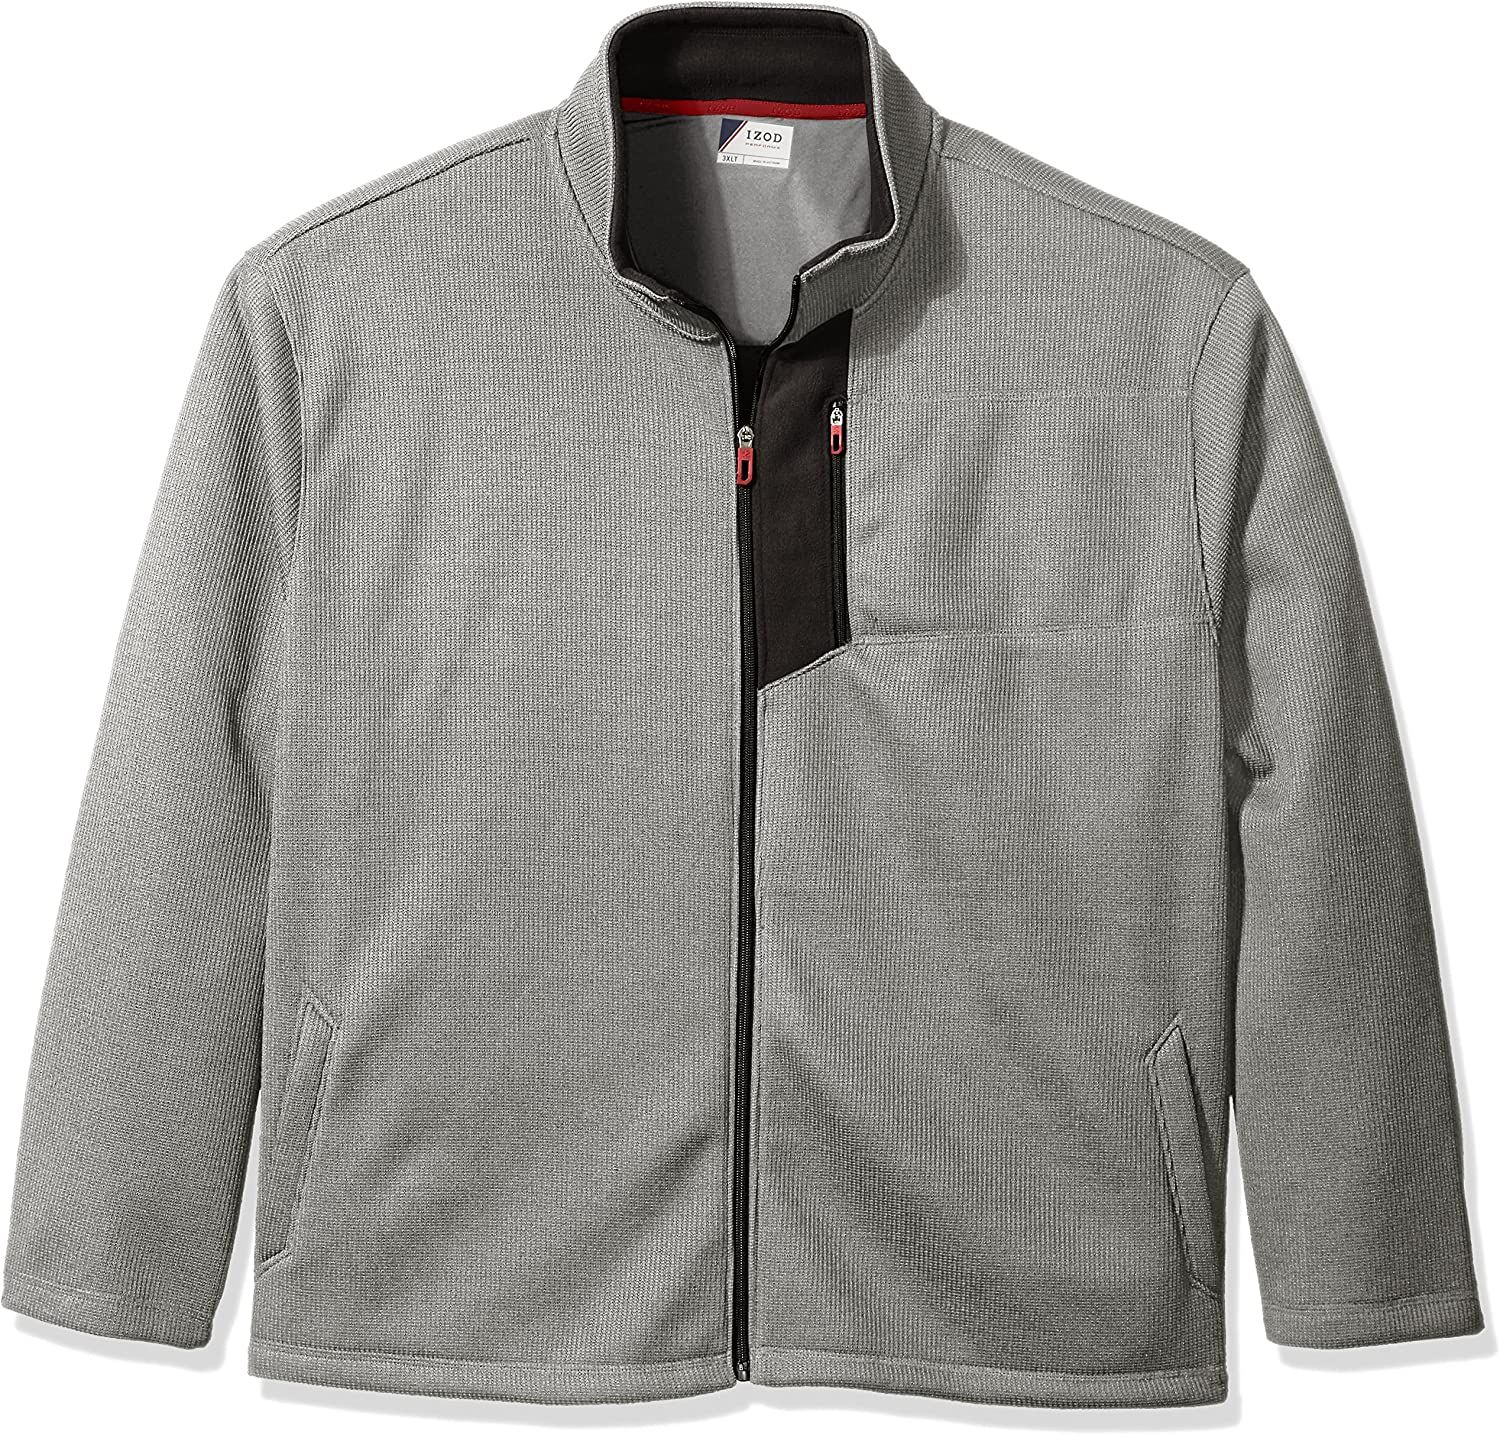 IZOD Mens Big and Tall Advantage Performance Full Zip Fleece Jacket